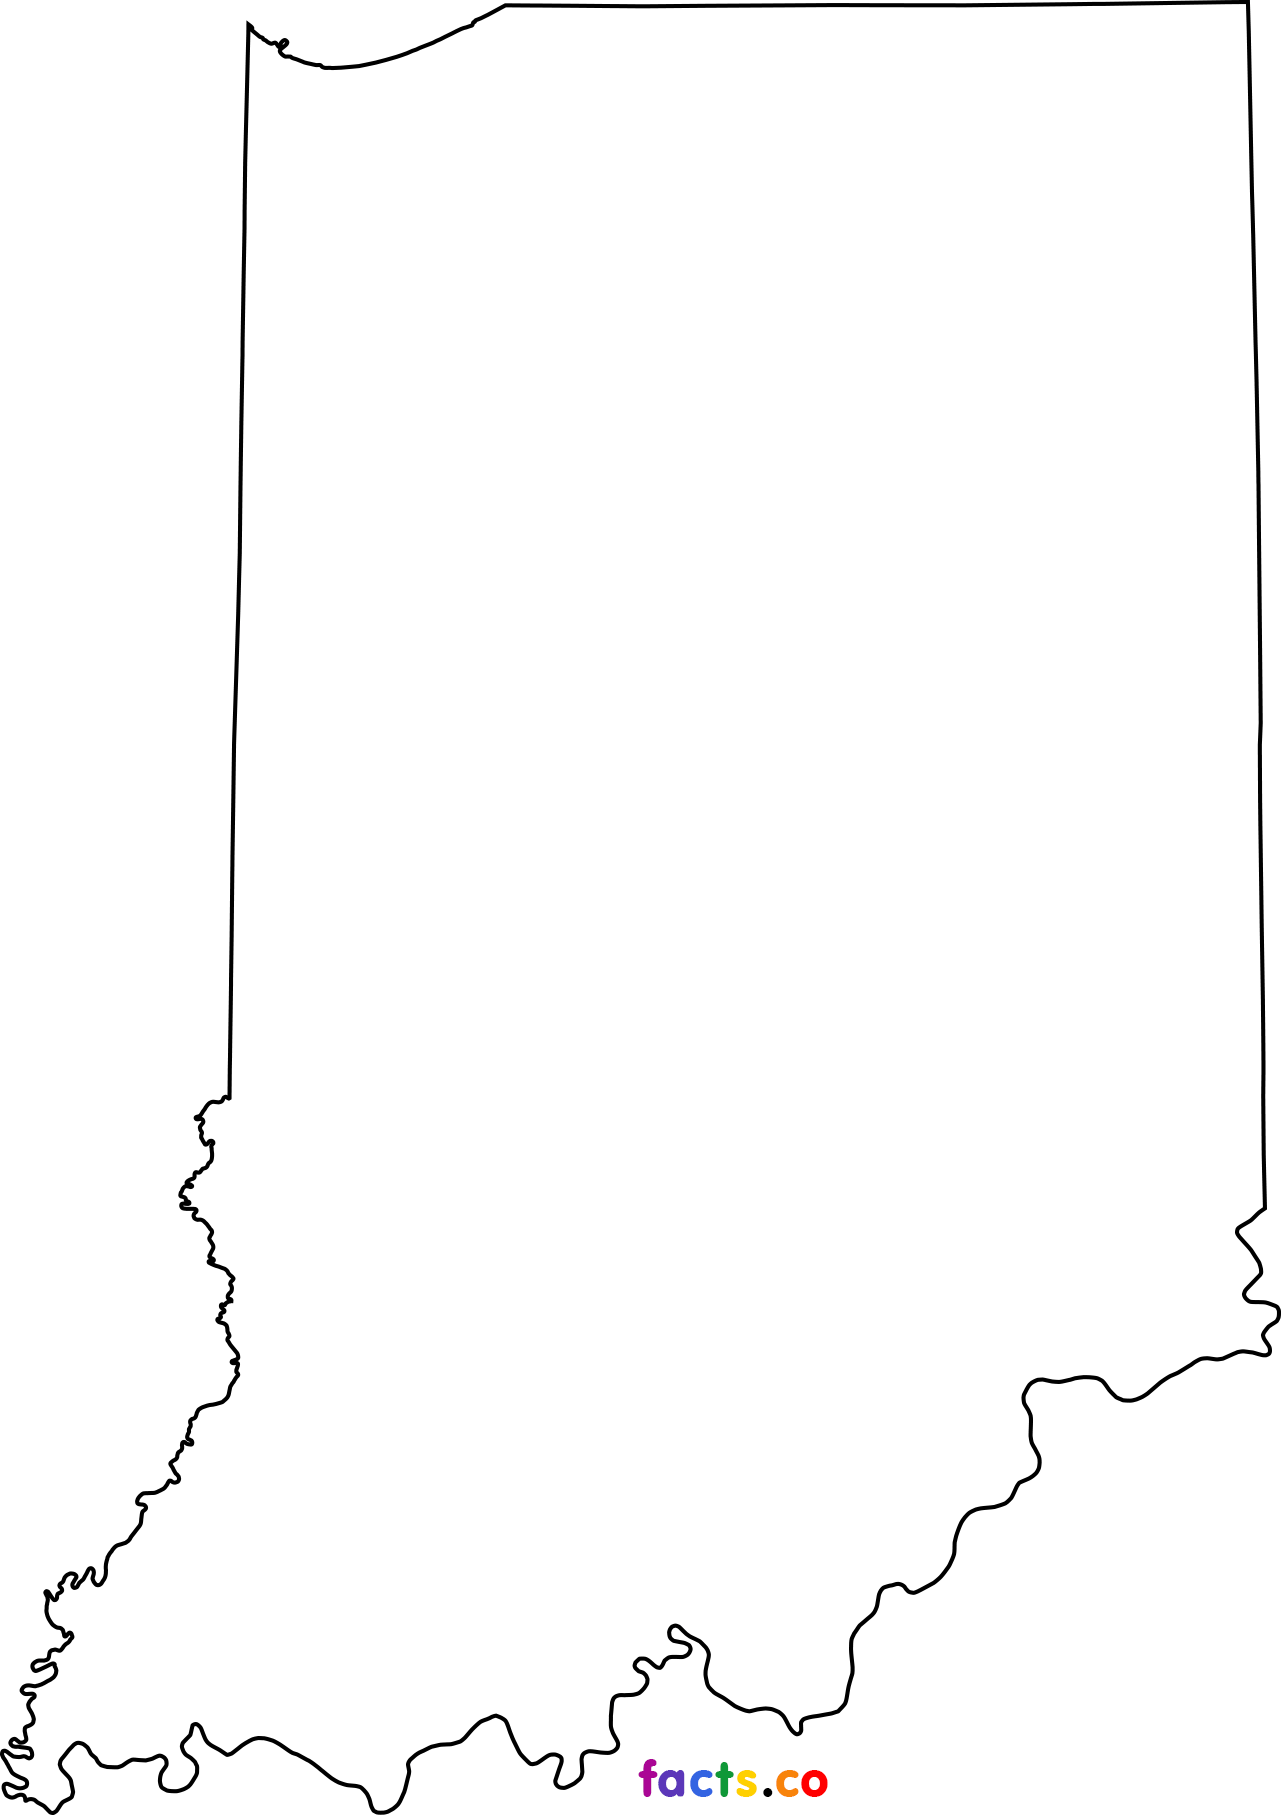 Outline Map Of Indiana With Clipart : Outline Map Of Indiana.